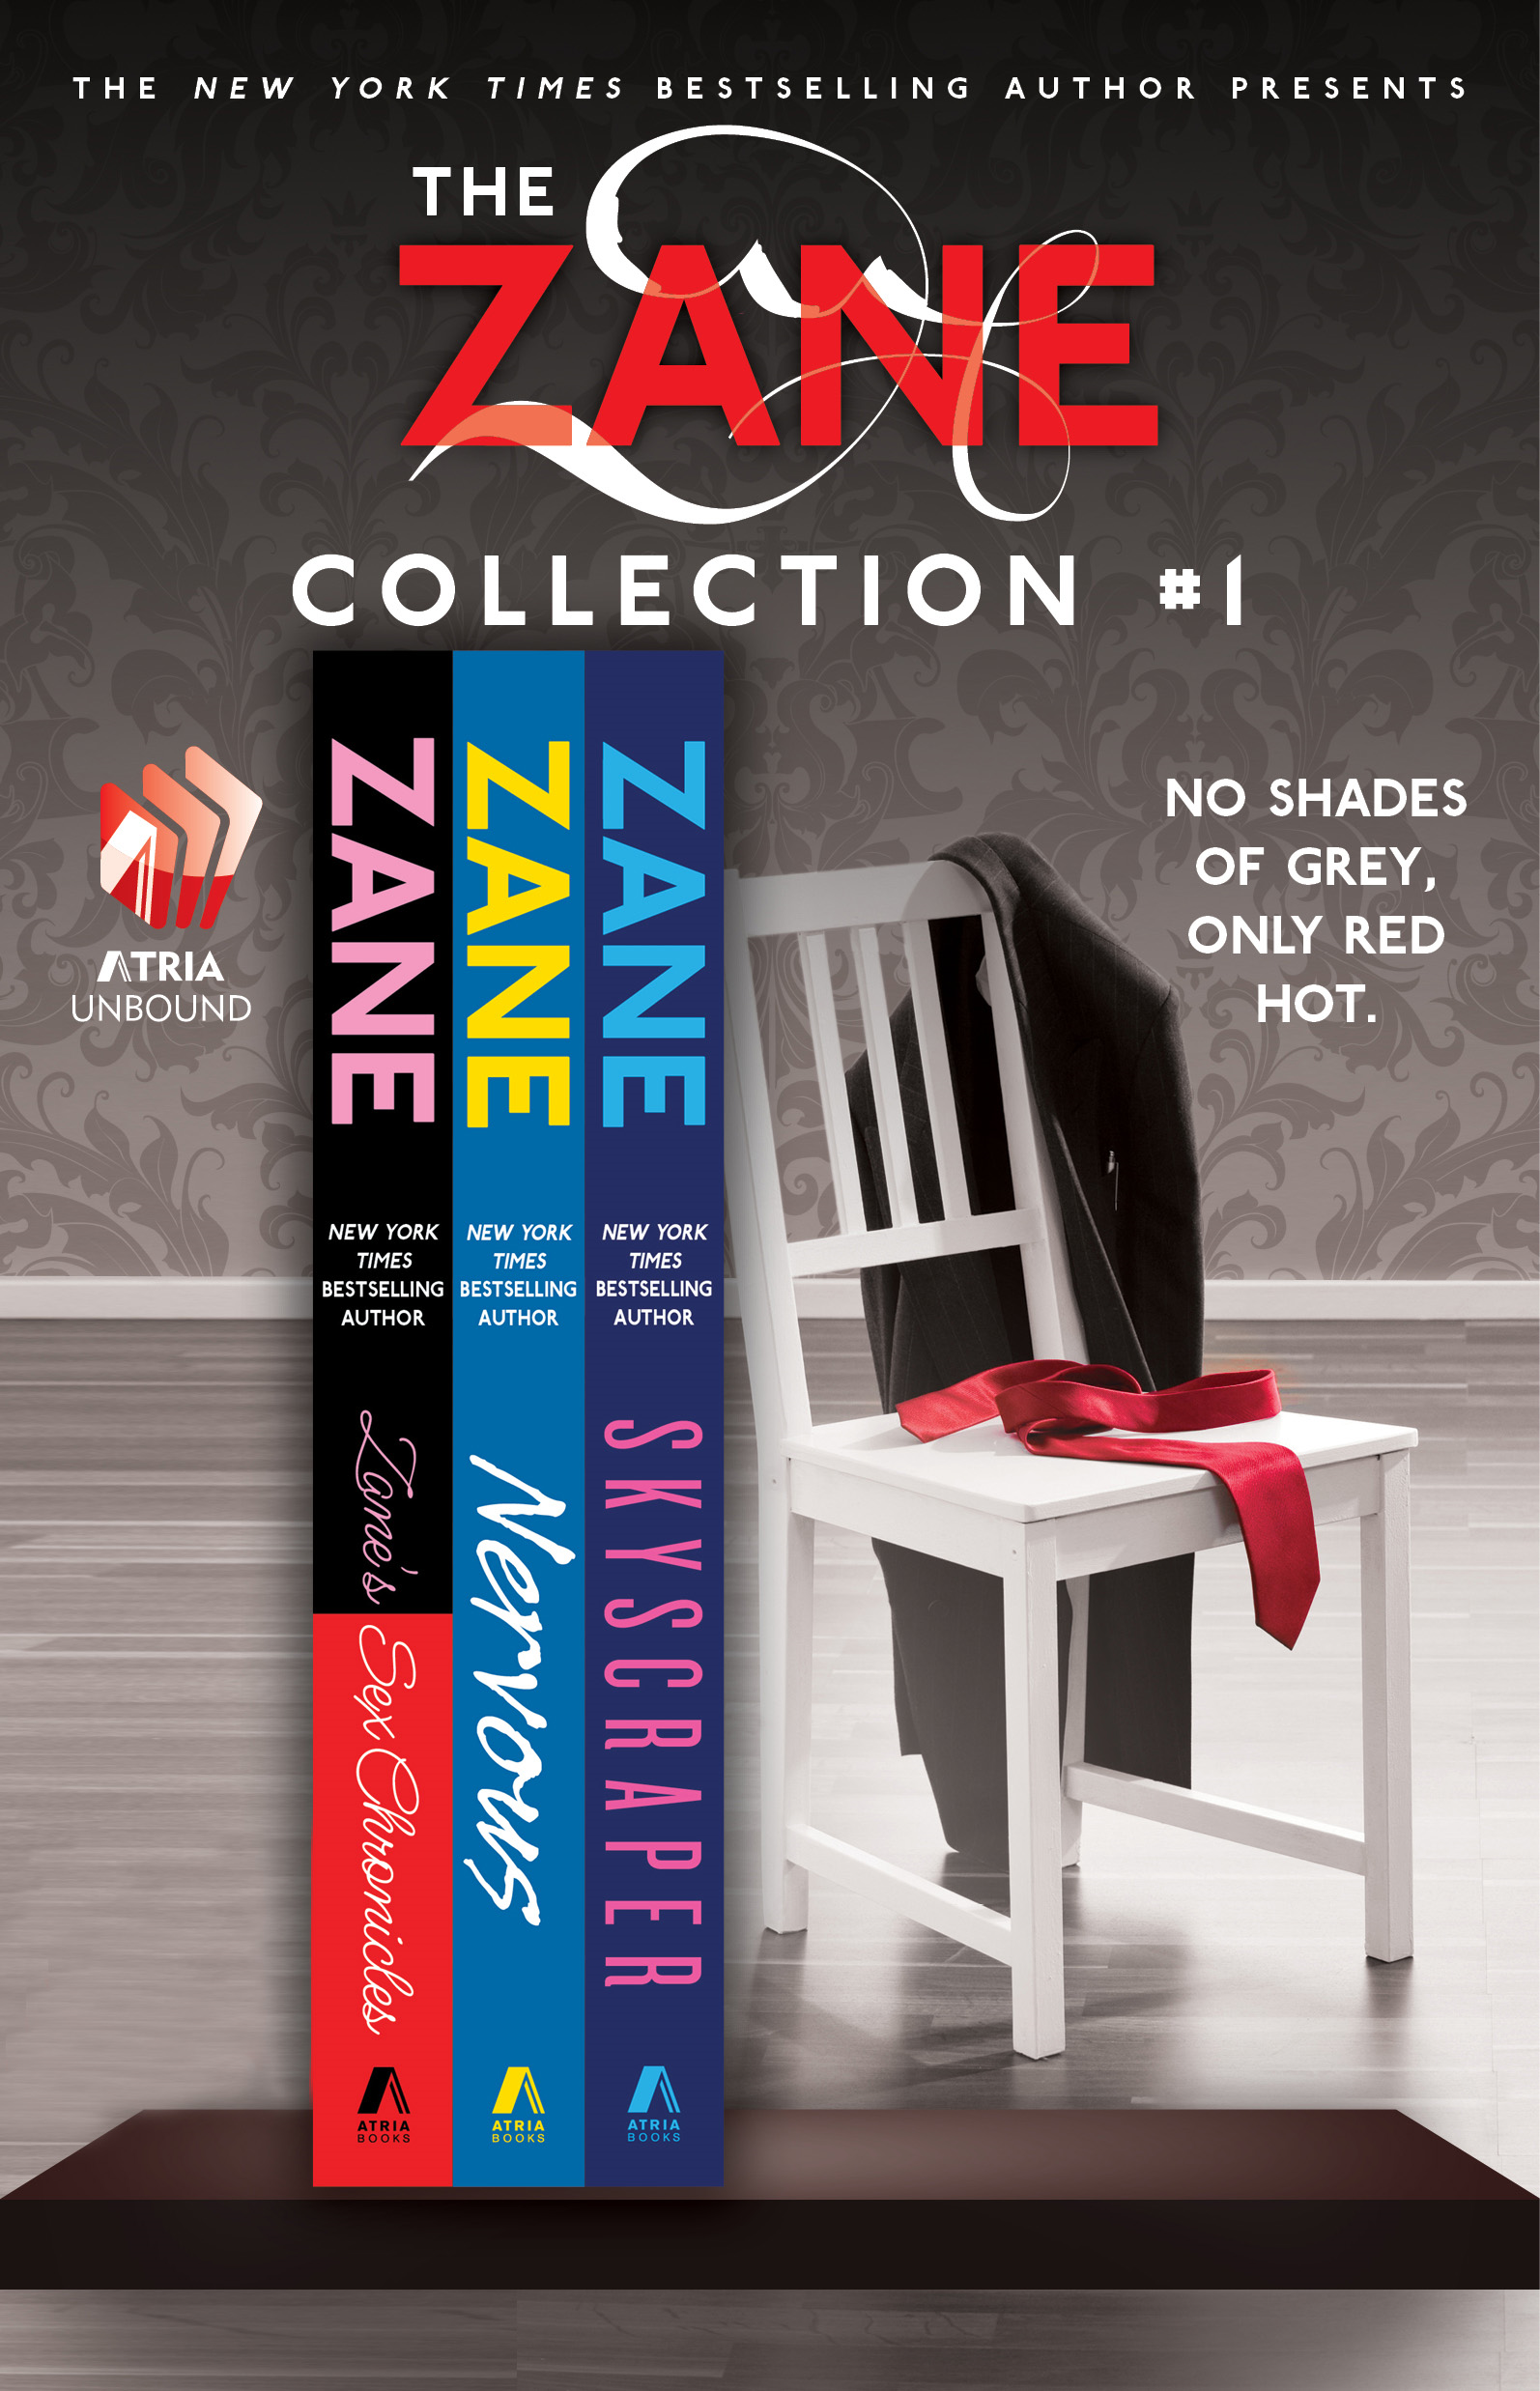 The Zane Collection #1 By: Zane